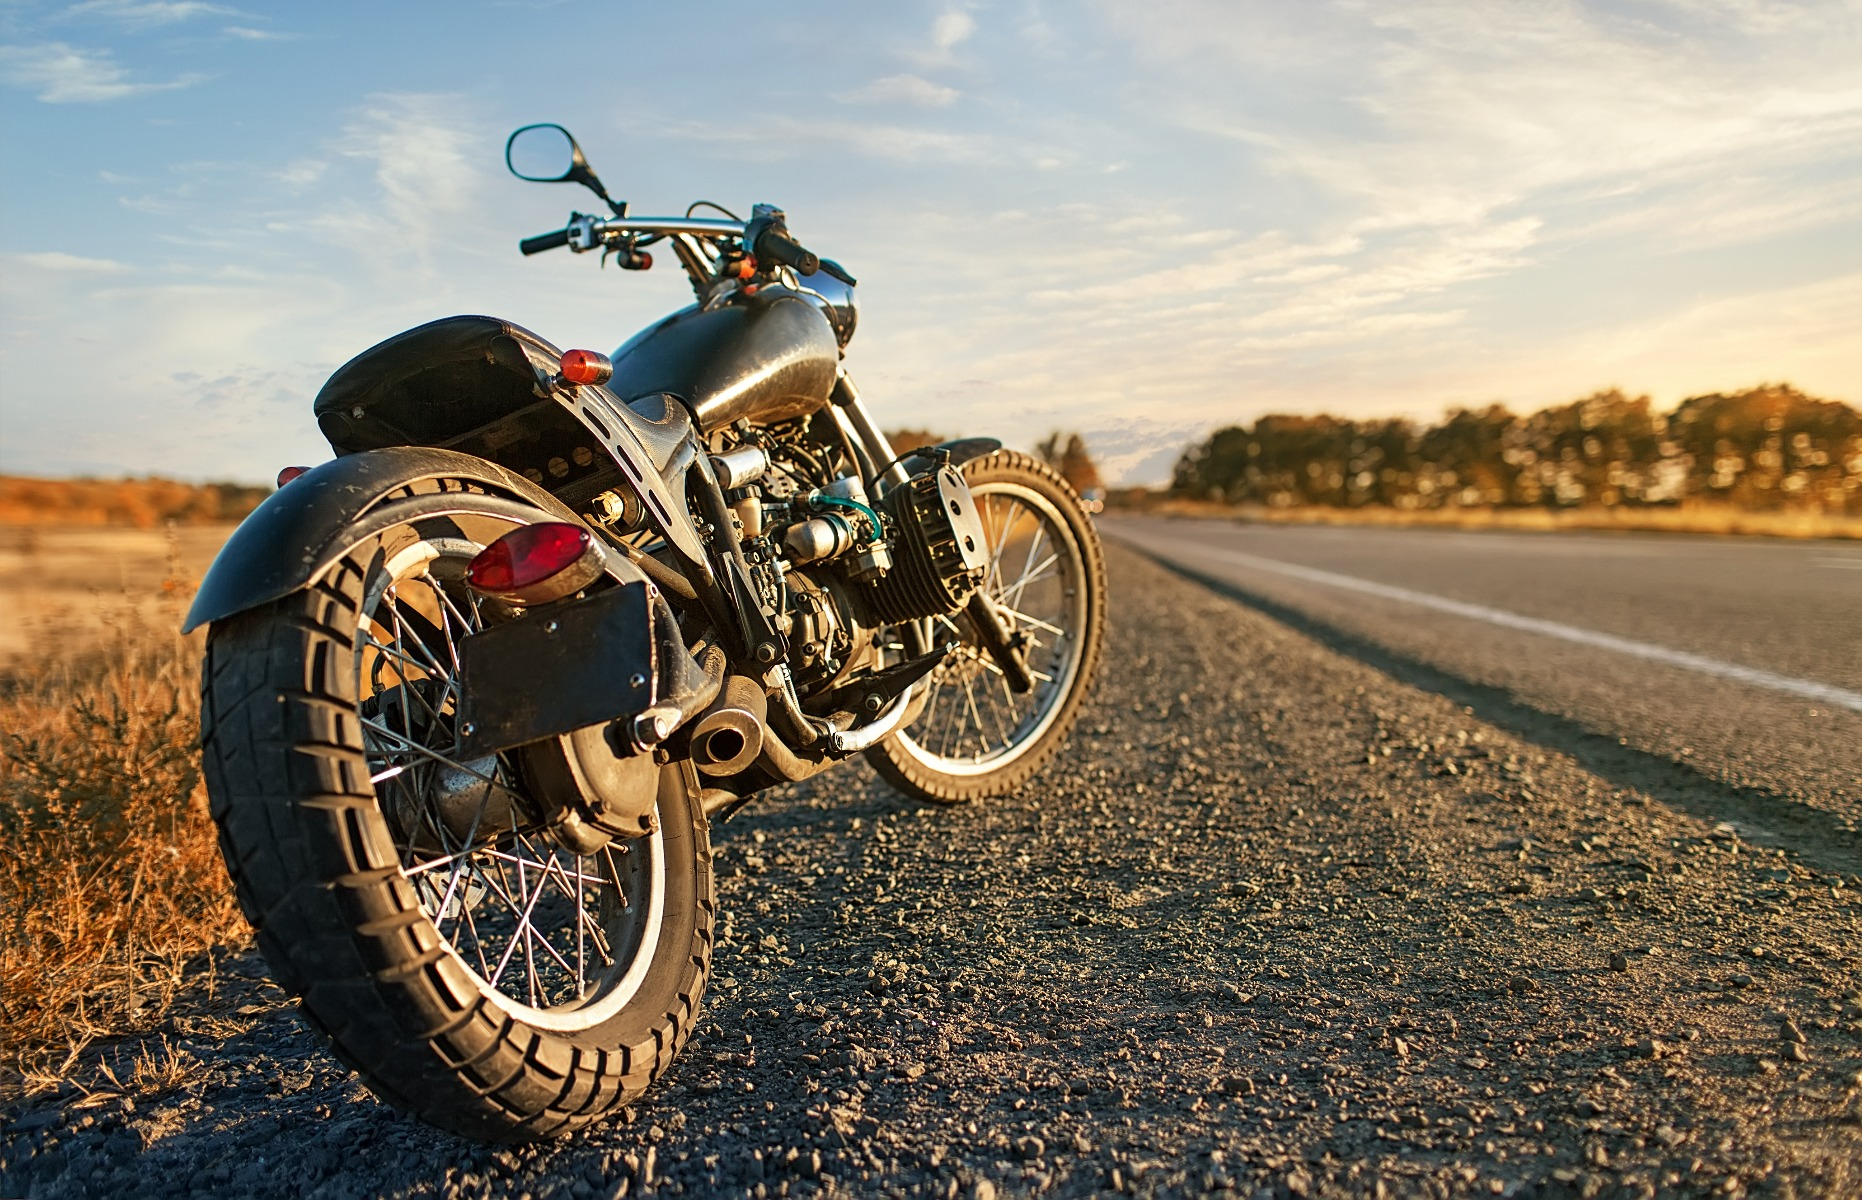 what kind of battery is a motorcycle battery